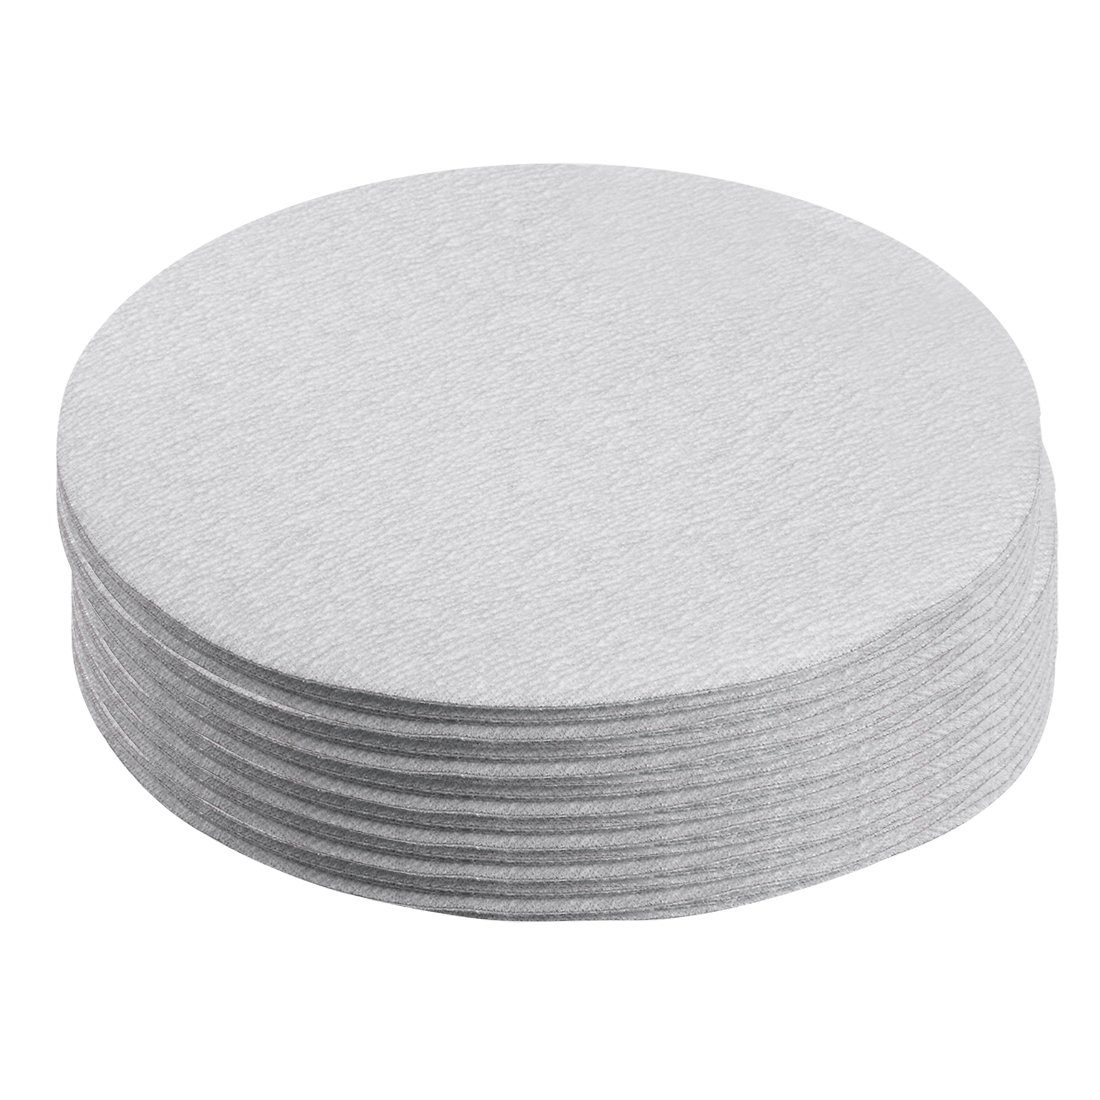 uxcell 50 Pcs 6-Inch Aluminum Oxide White Dry Hook and Loop Sanding Discs Flocking Sandpaper 320 Grit